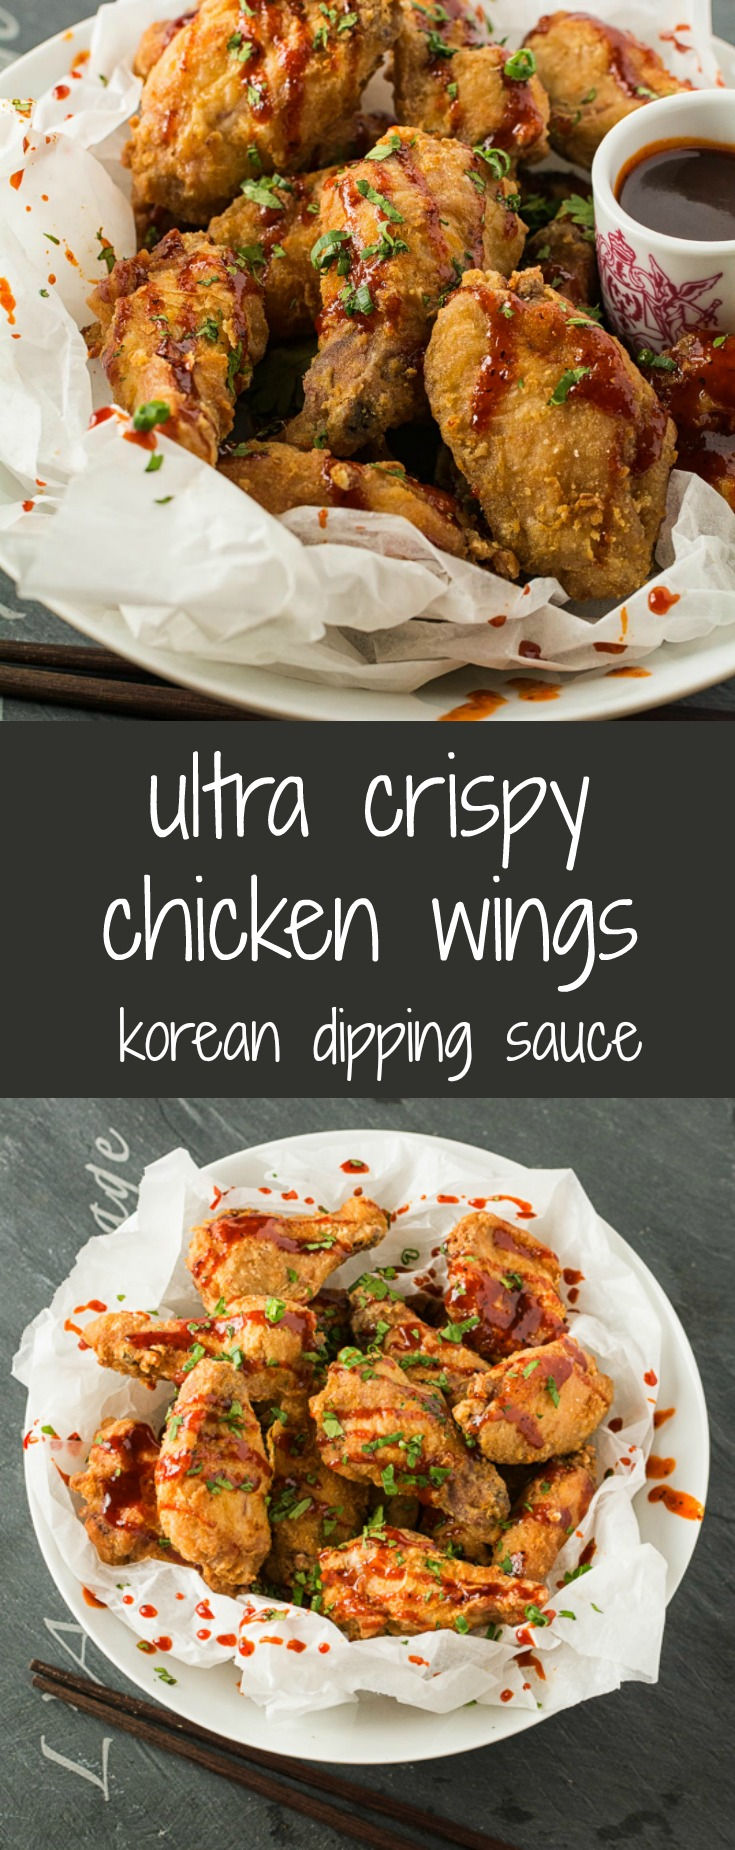 Seriously crispy chicken wings with spicy Korean dipping sauce.